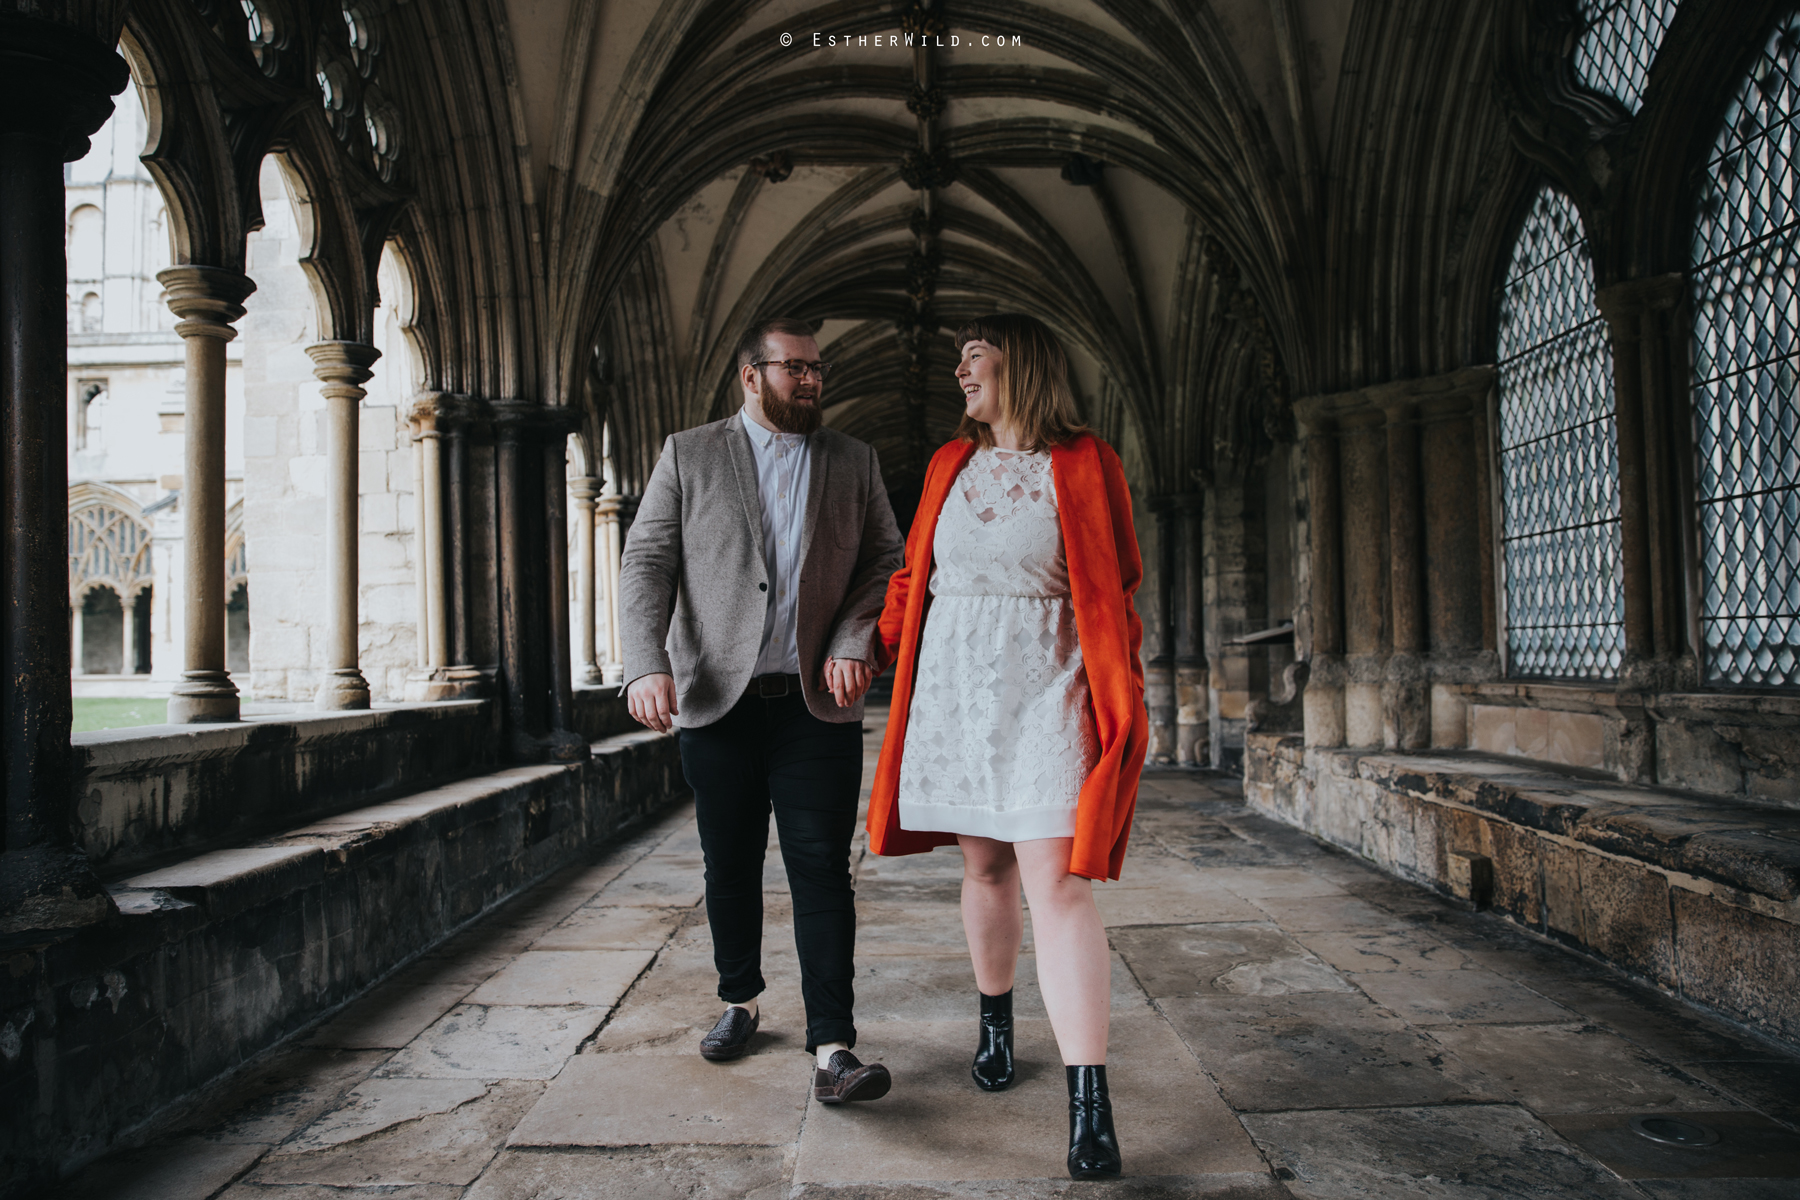 Norwich_Cathedral_Photo_Session_Engagement_Love_Pre-Wedding_IMG_3484.jpg